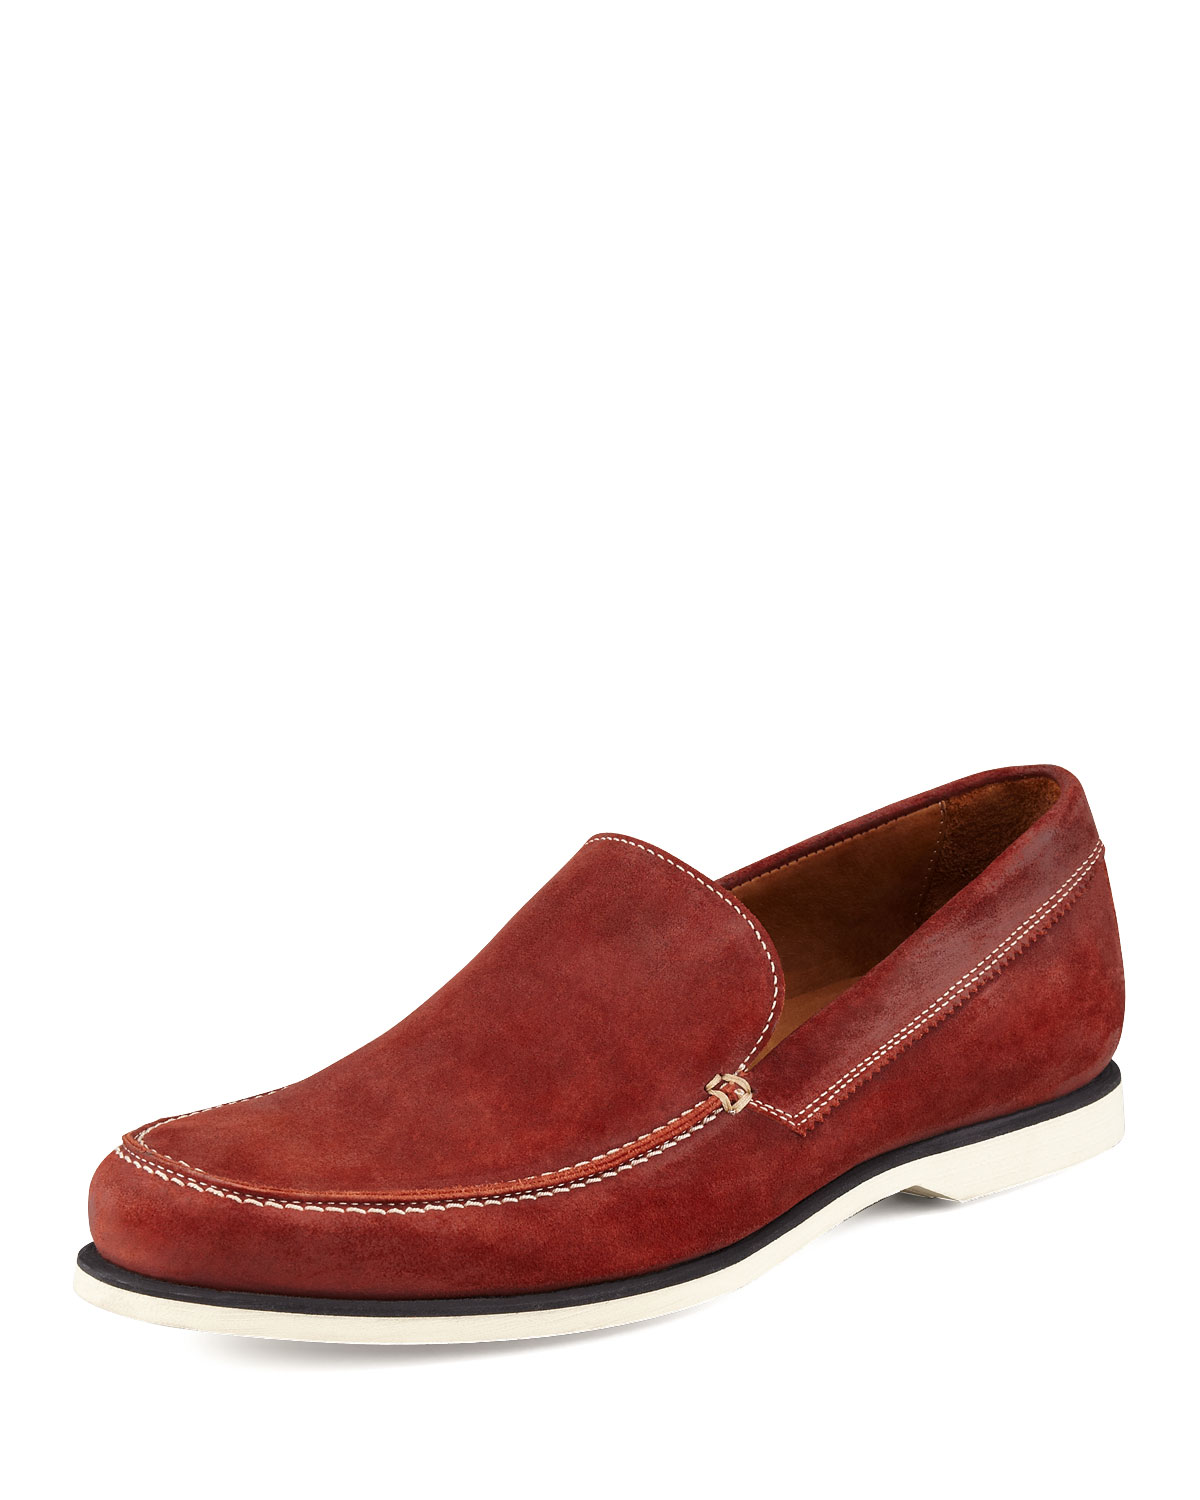 John Varvatos Monaco Suede Slip-On, Brick